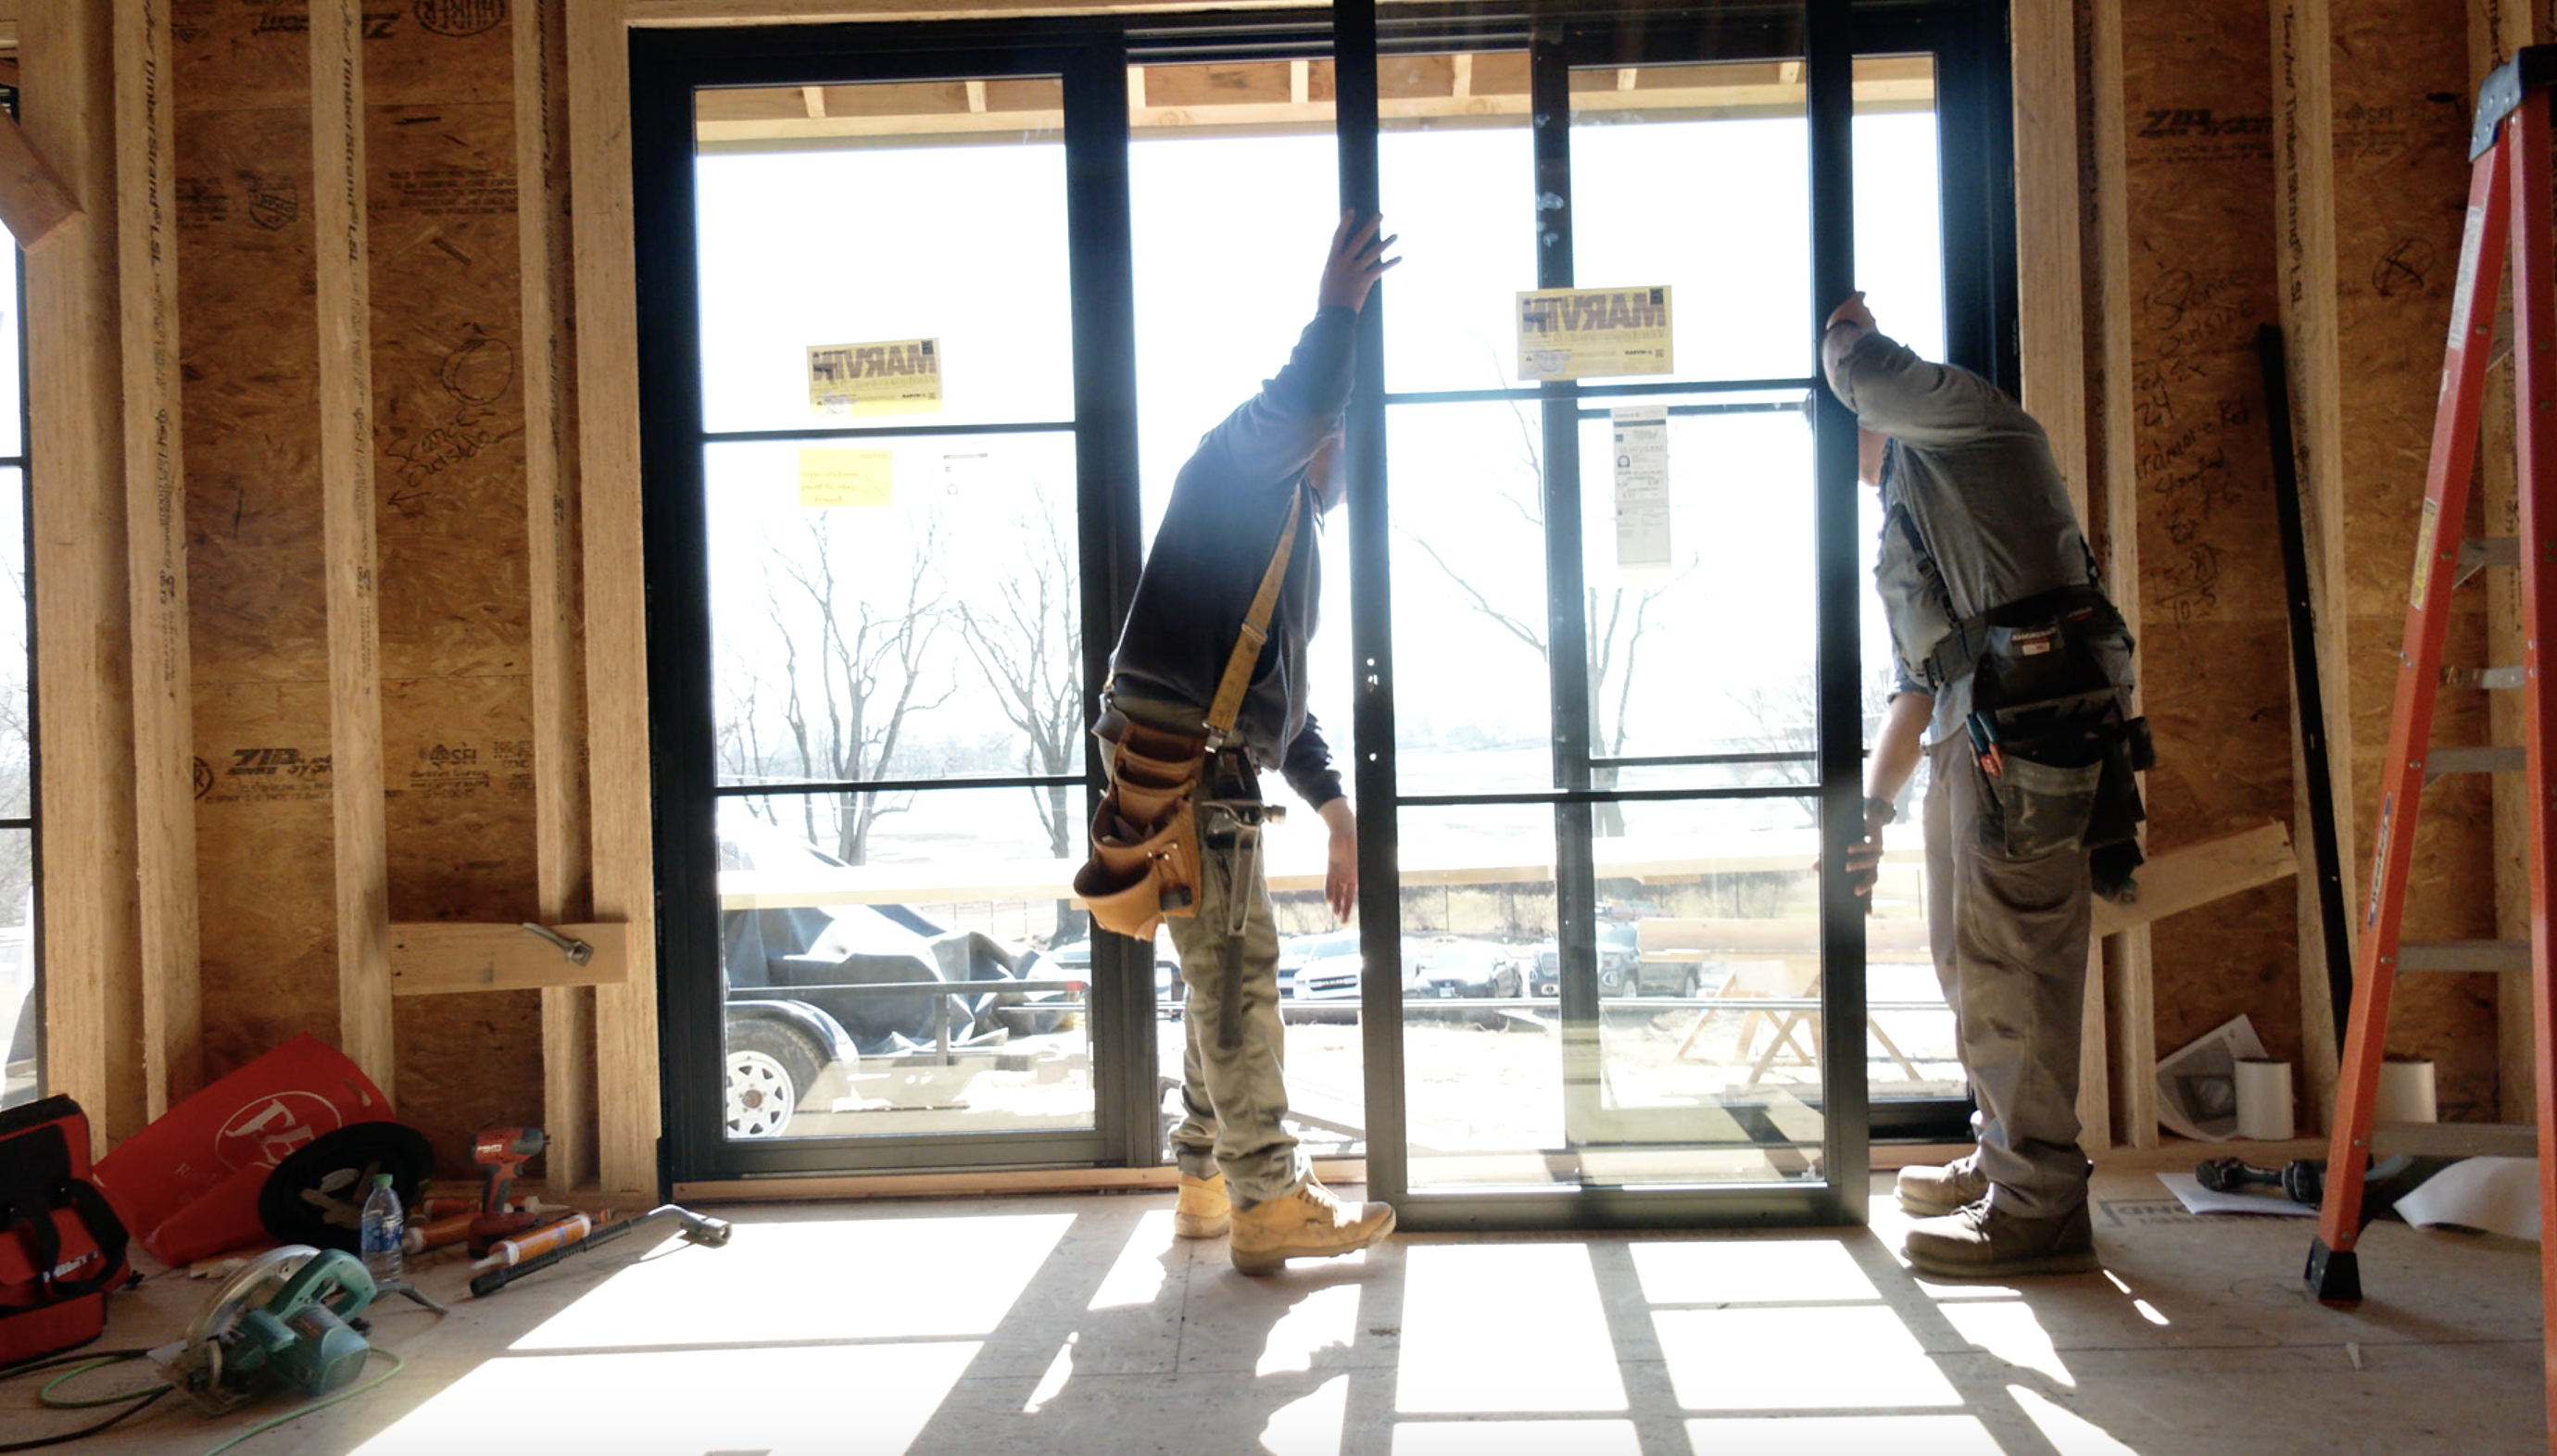 Installing windows at the idea house